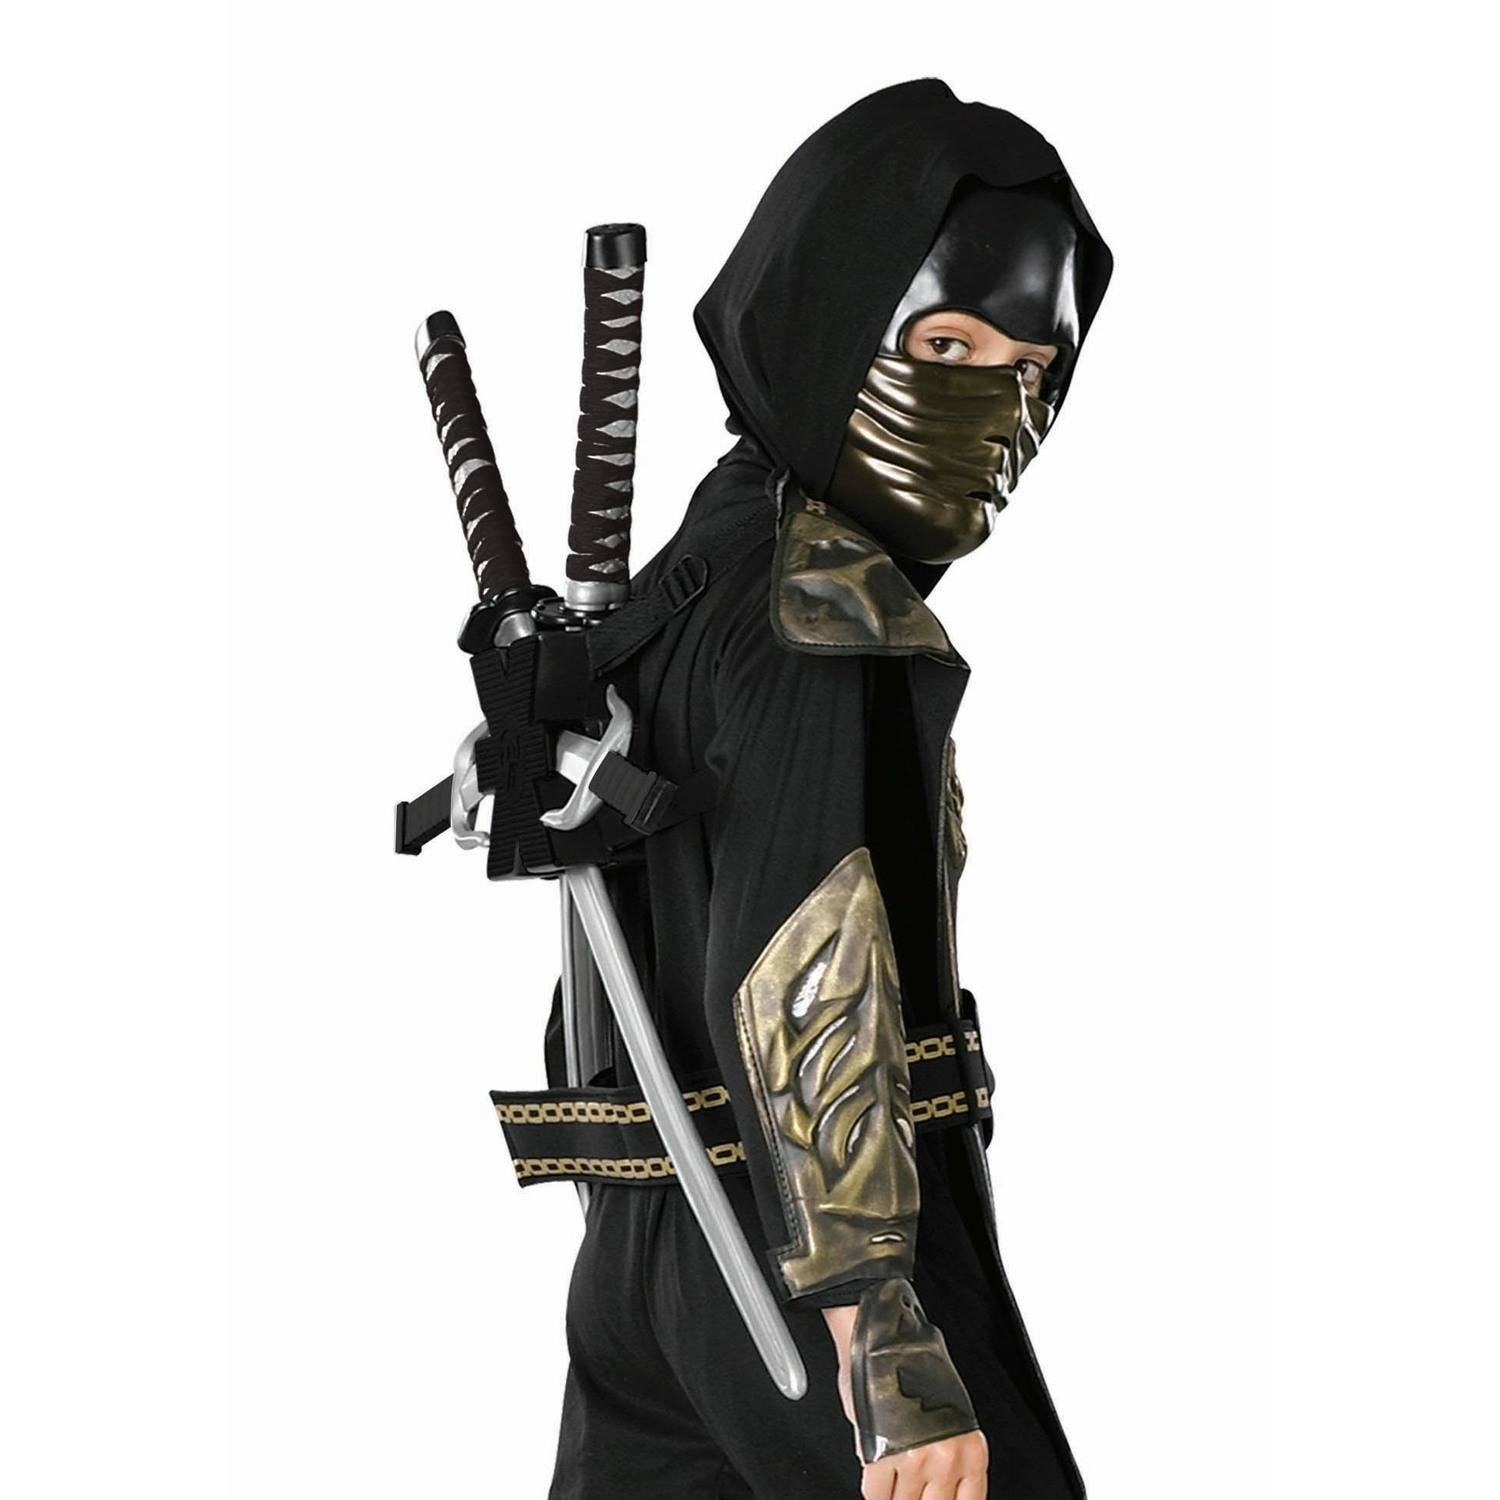 Child Costume Black Ninja Backpack Halloween Costume Accessory